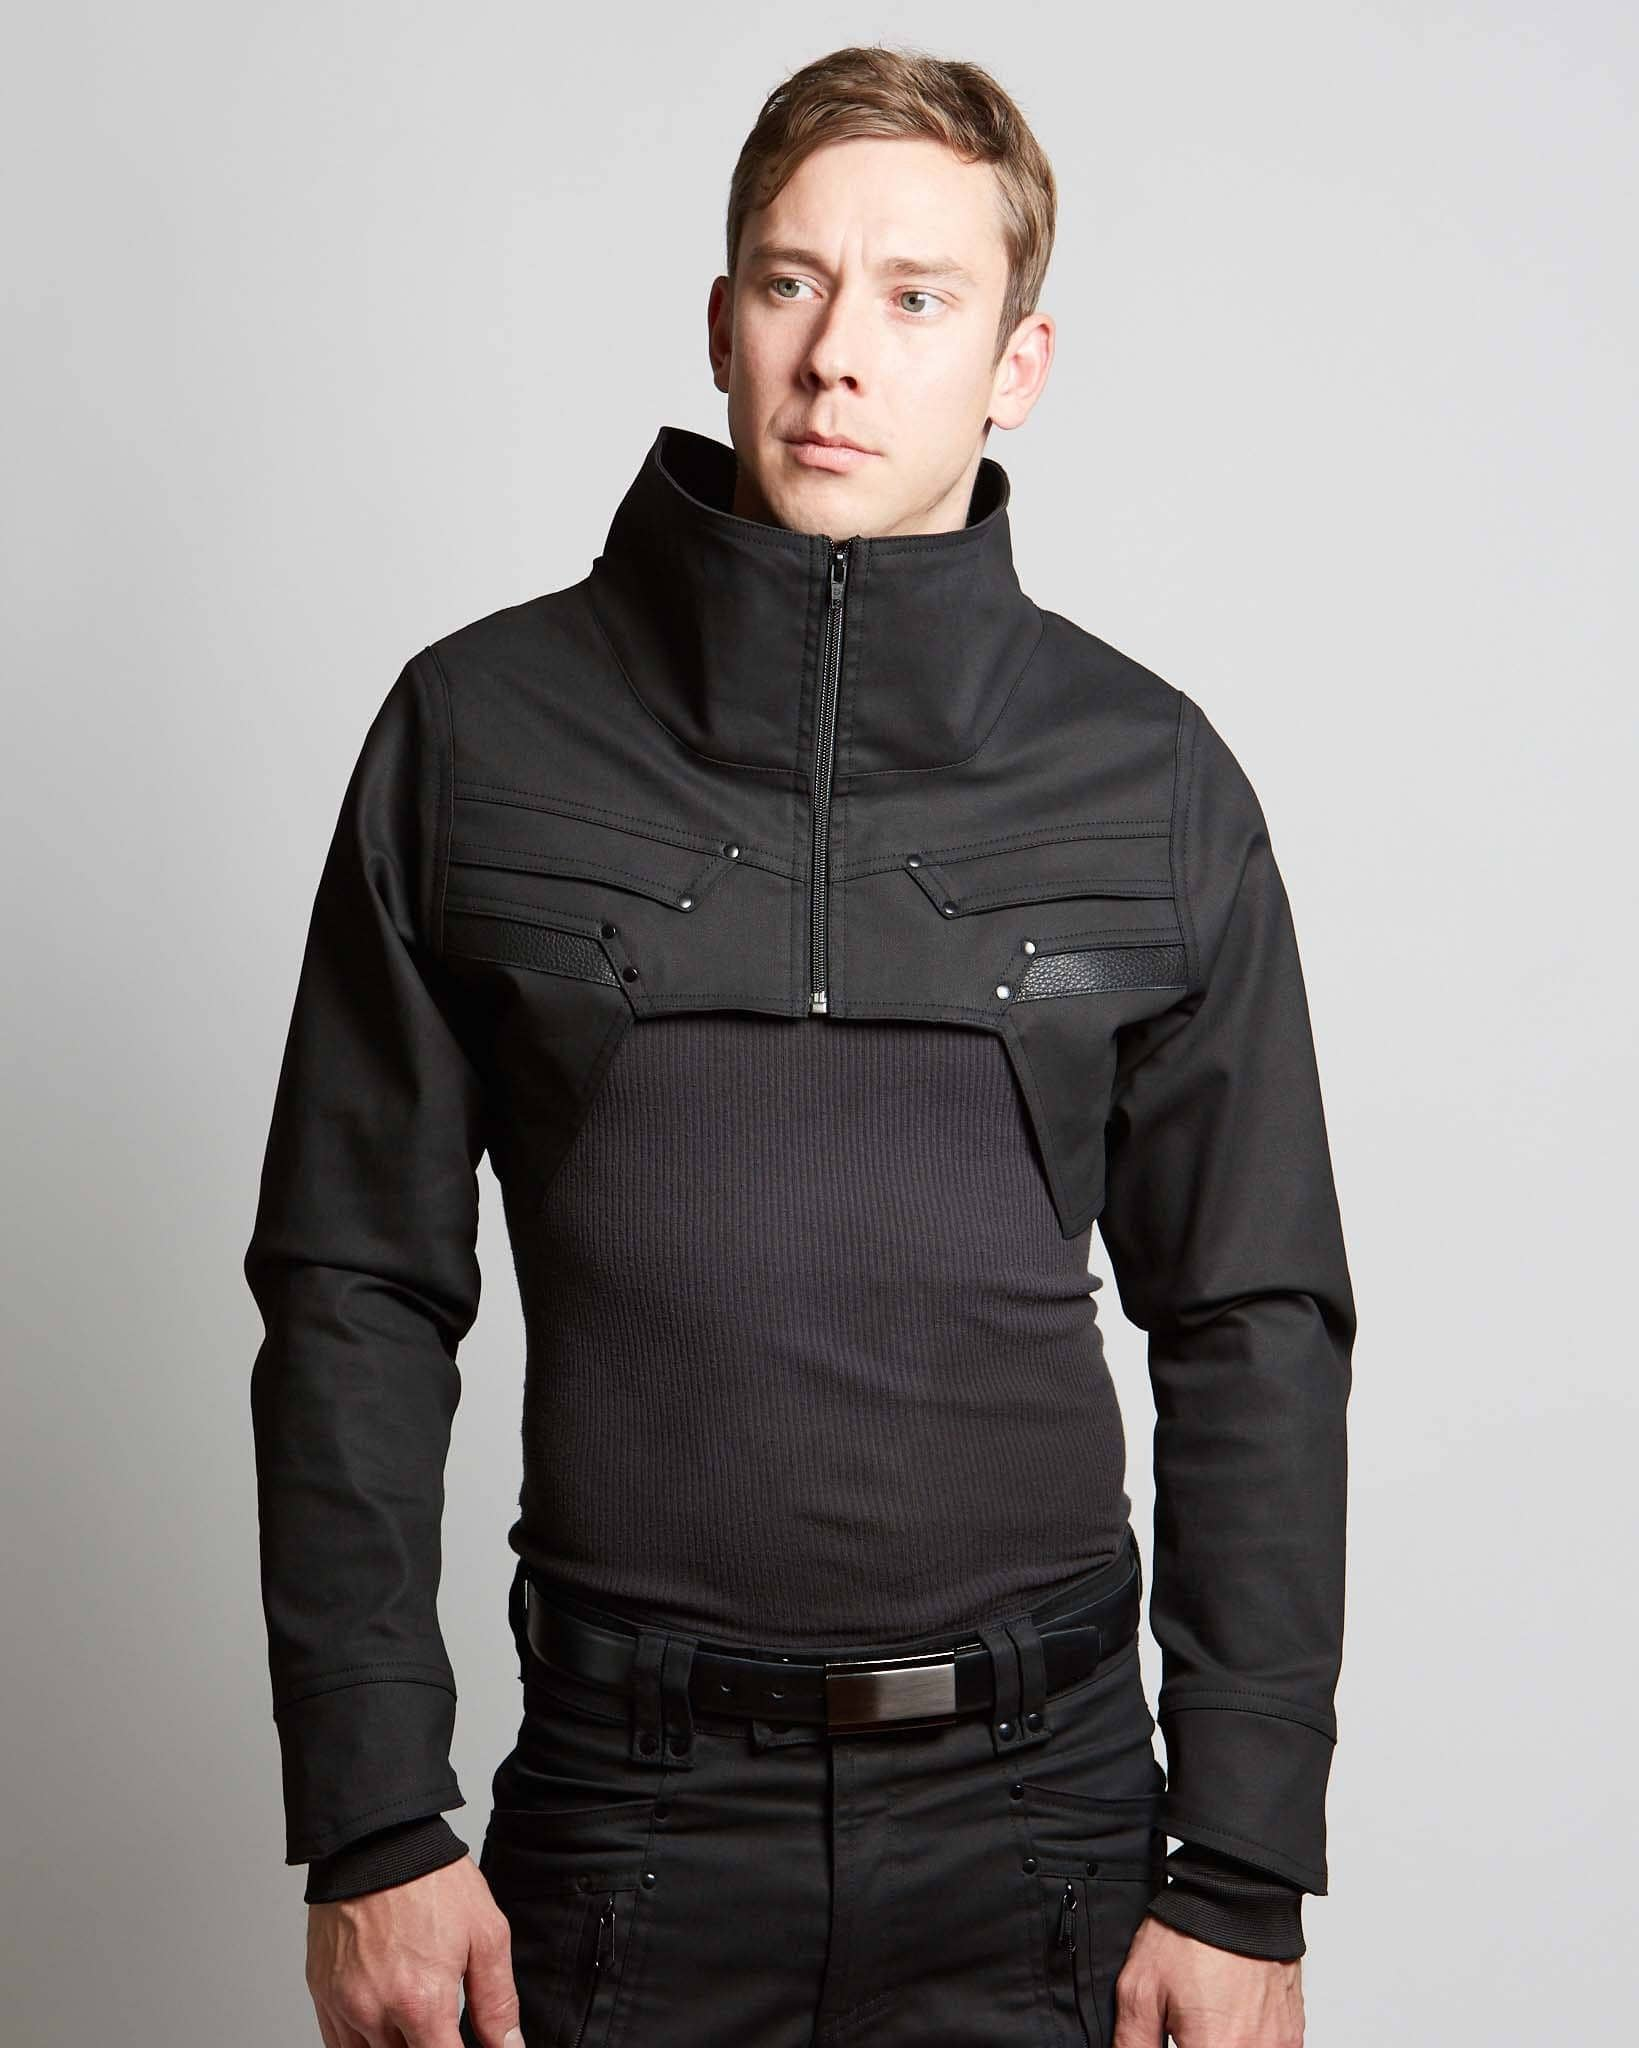 high collar techwear style shrug for men and women